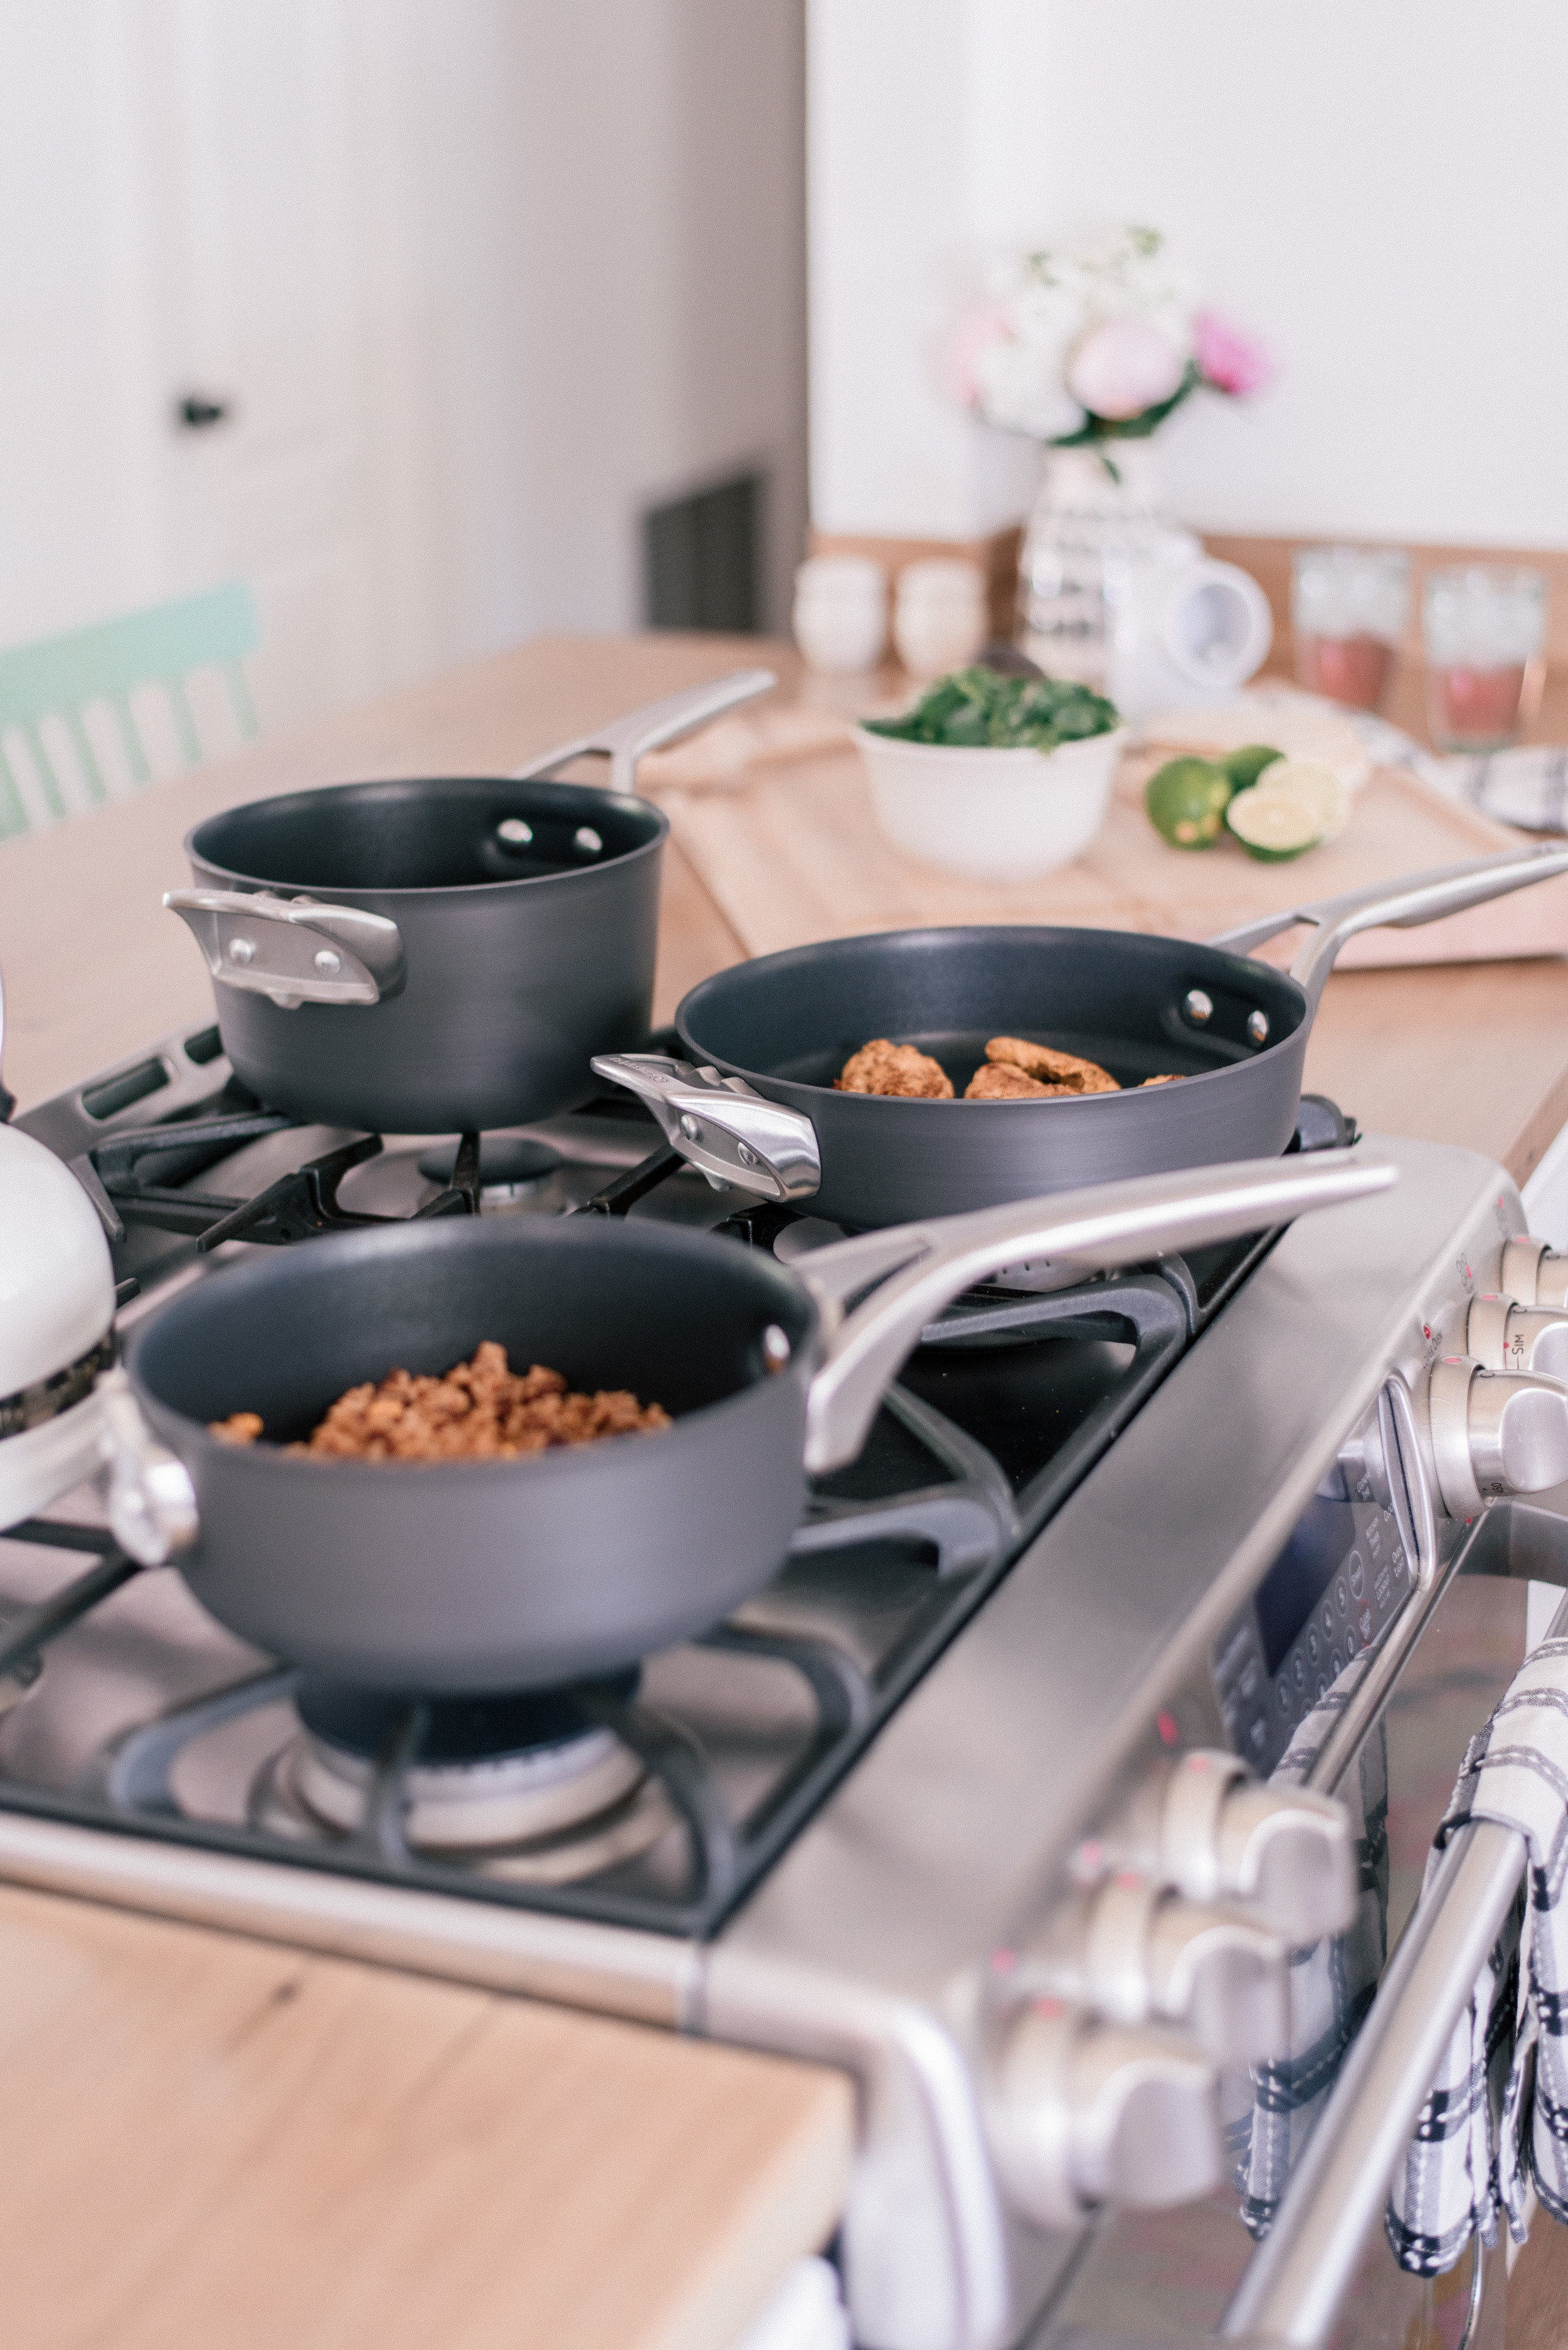 The Best Nonstick Cookware Sets with Calphalon and Bed Bath & Beyond featured by top U.S. Lifestyle blog Love + Specs: image of Calphalon nonstick cooking pans on cottage kitchen stove